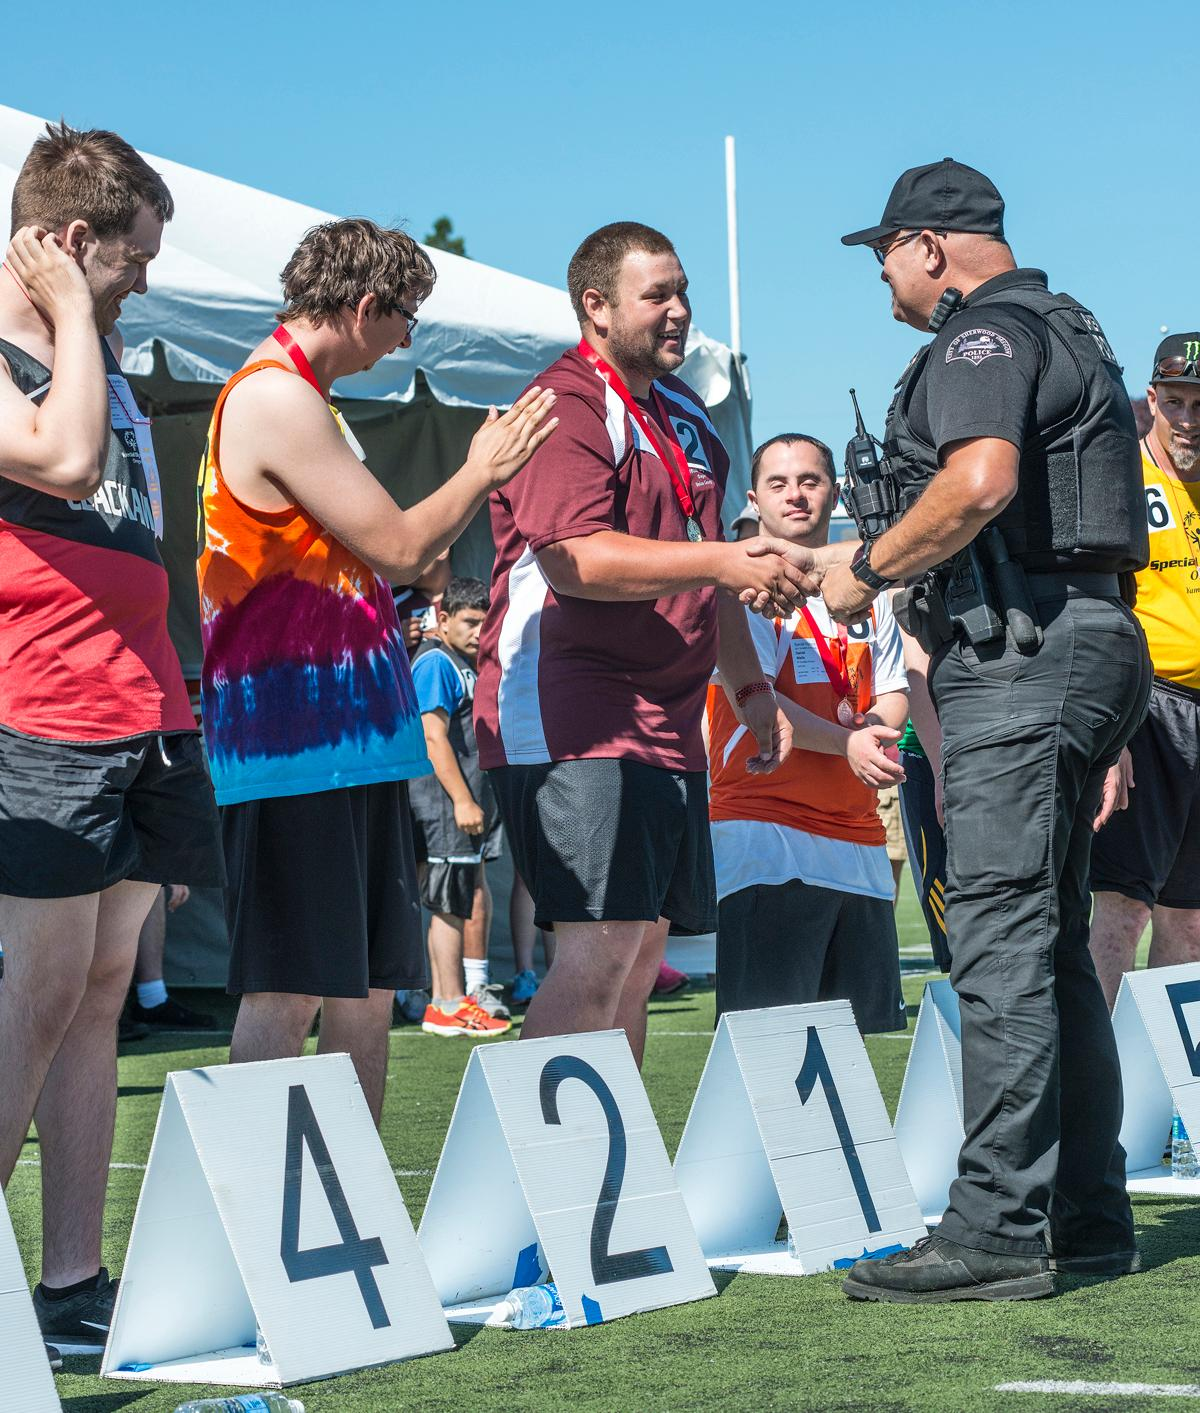 Special Olympics Oregon held its competition at Oregon State University's sports complex and Corvallis High School's track on Saturday. The athletes competed in  golf, softball, track & field, wheel chair races and bocce. Photo by Abigail Winn, Oregon News Lab